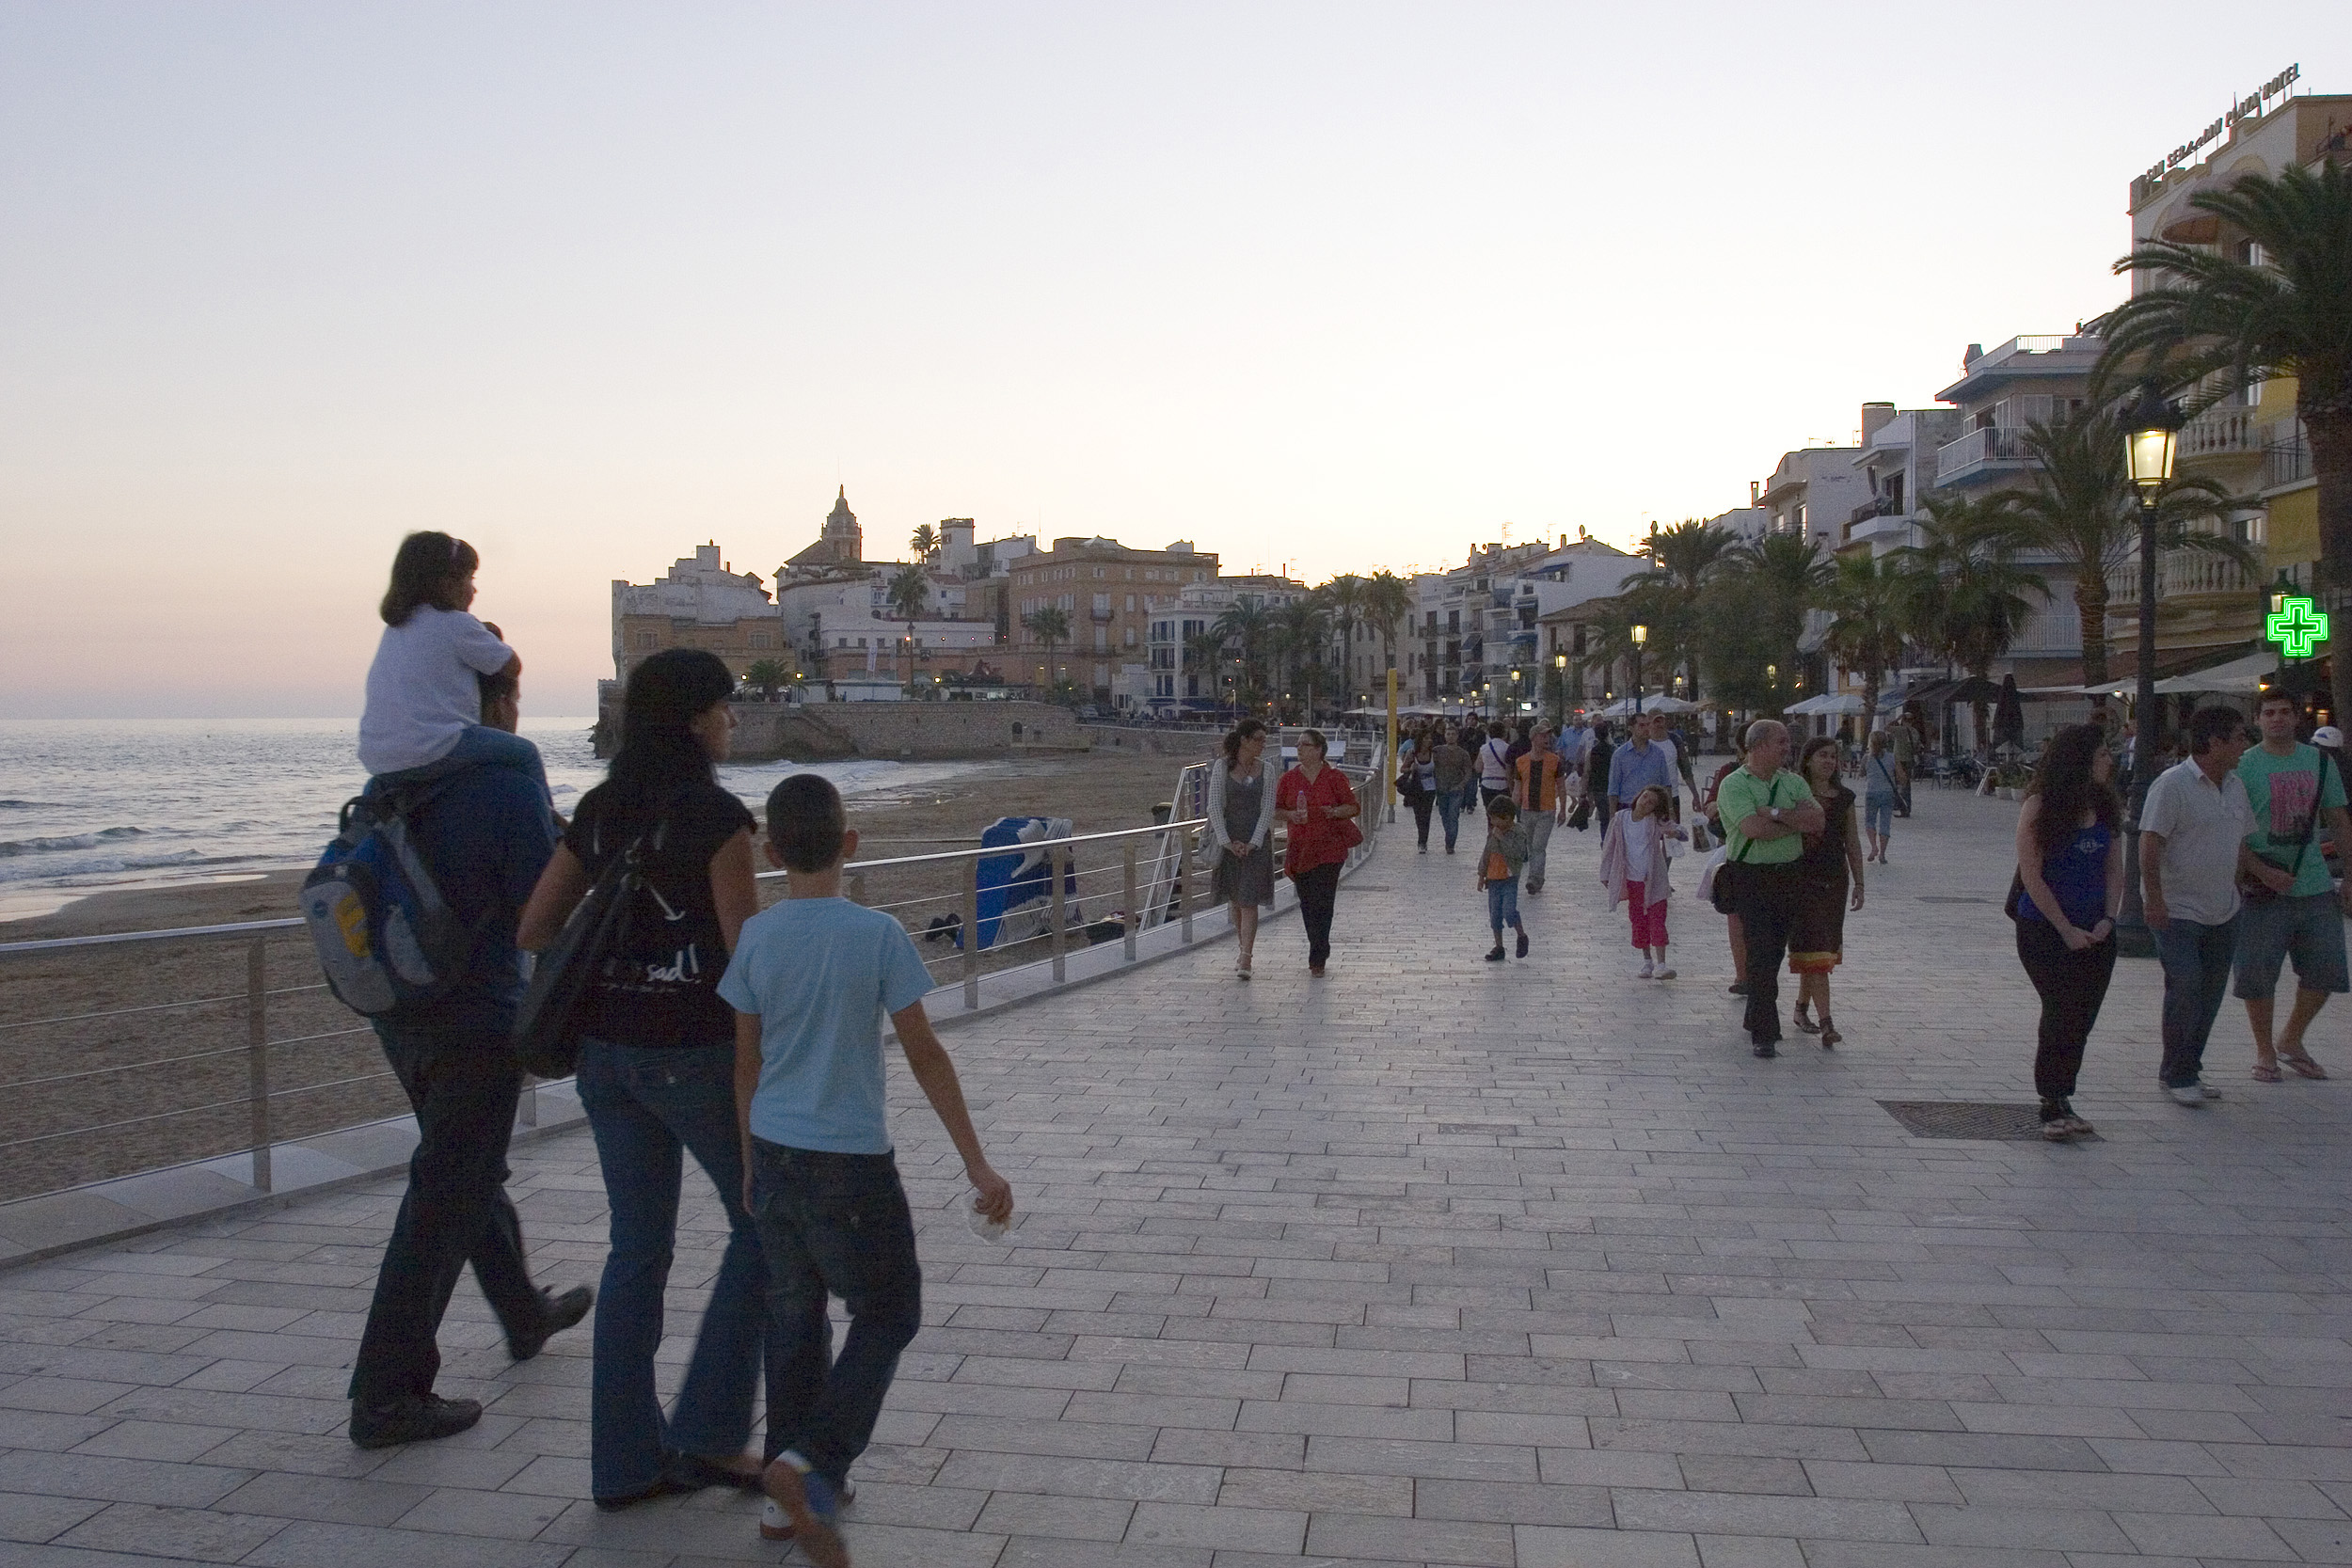 Busy and trendy coastal town of Sitges